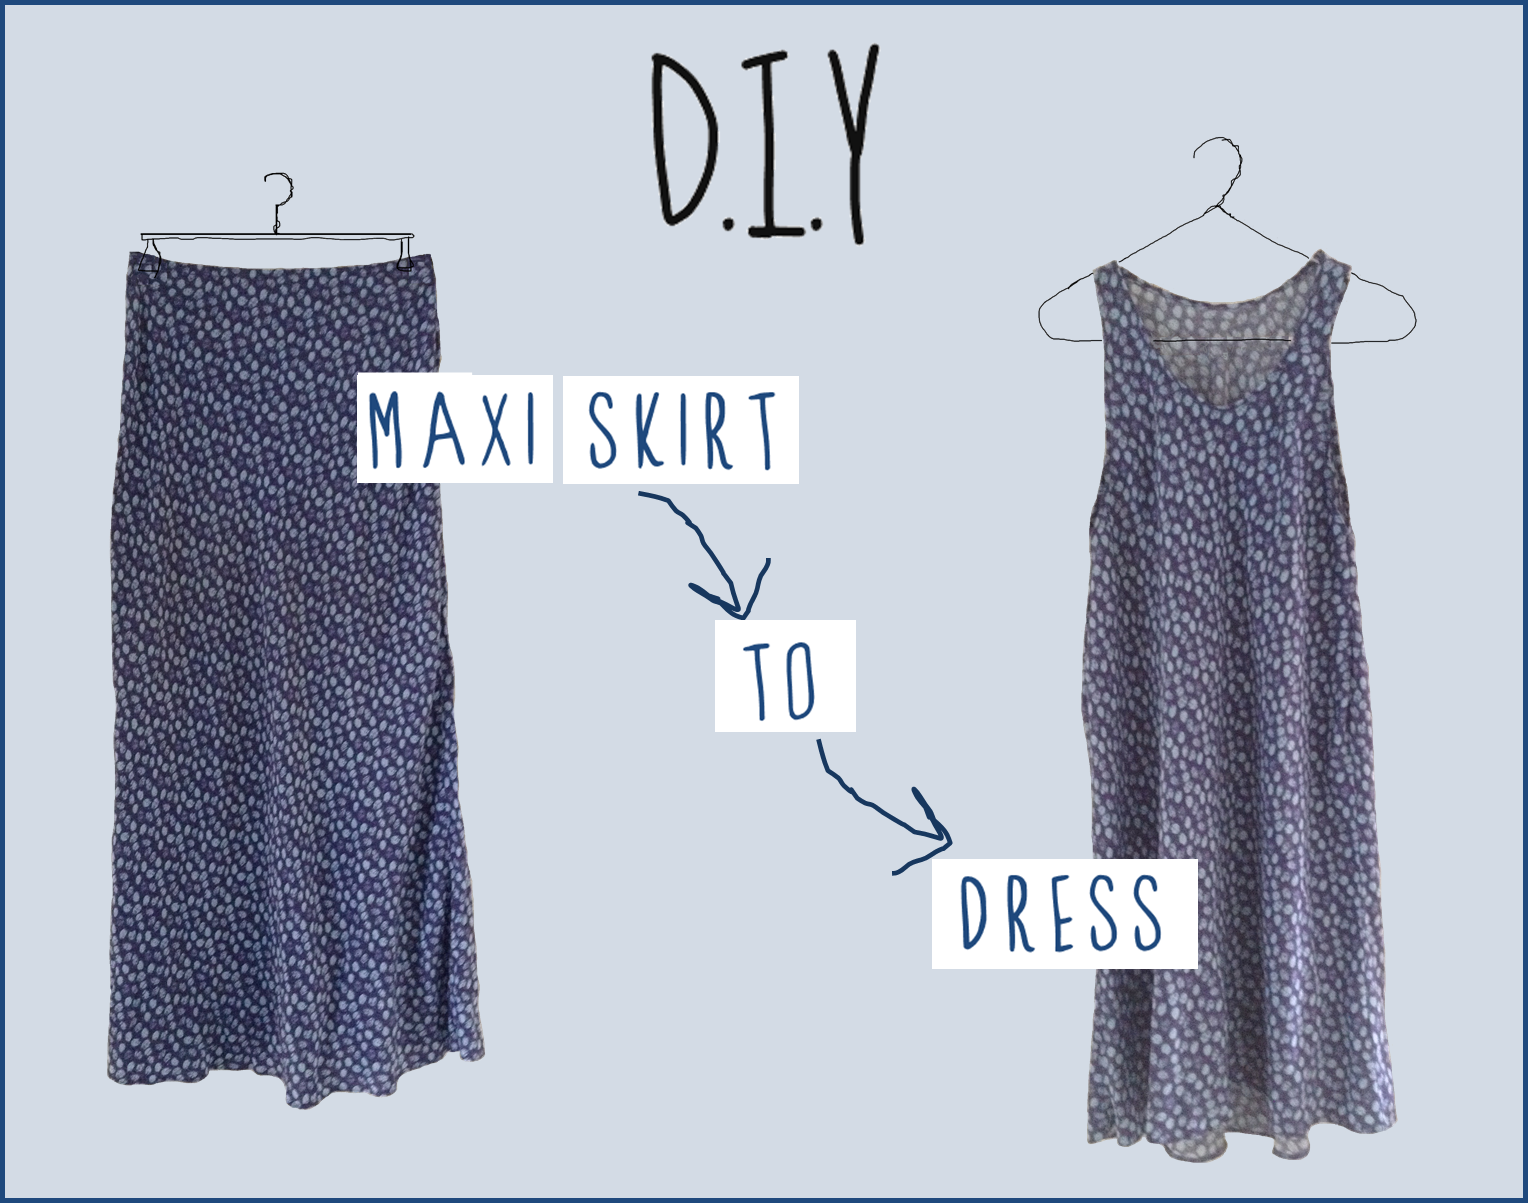 allurescent diy turn a maxi skirt into a dress in 3 easy